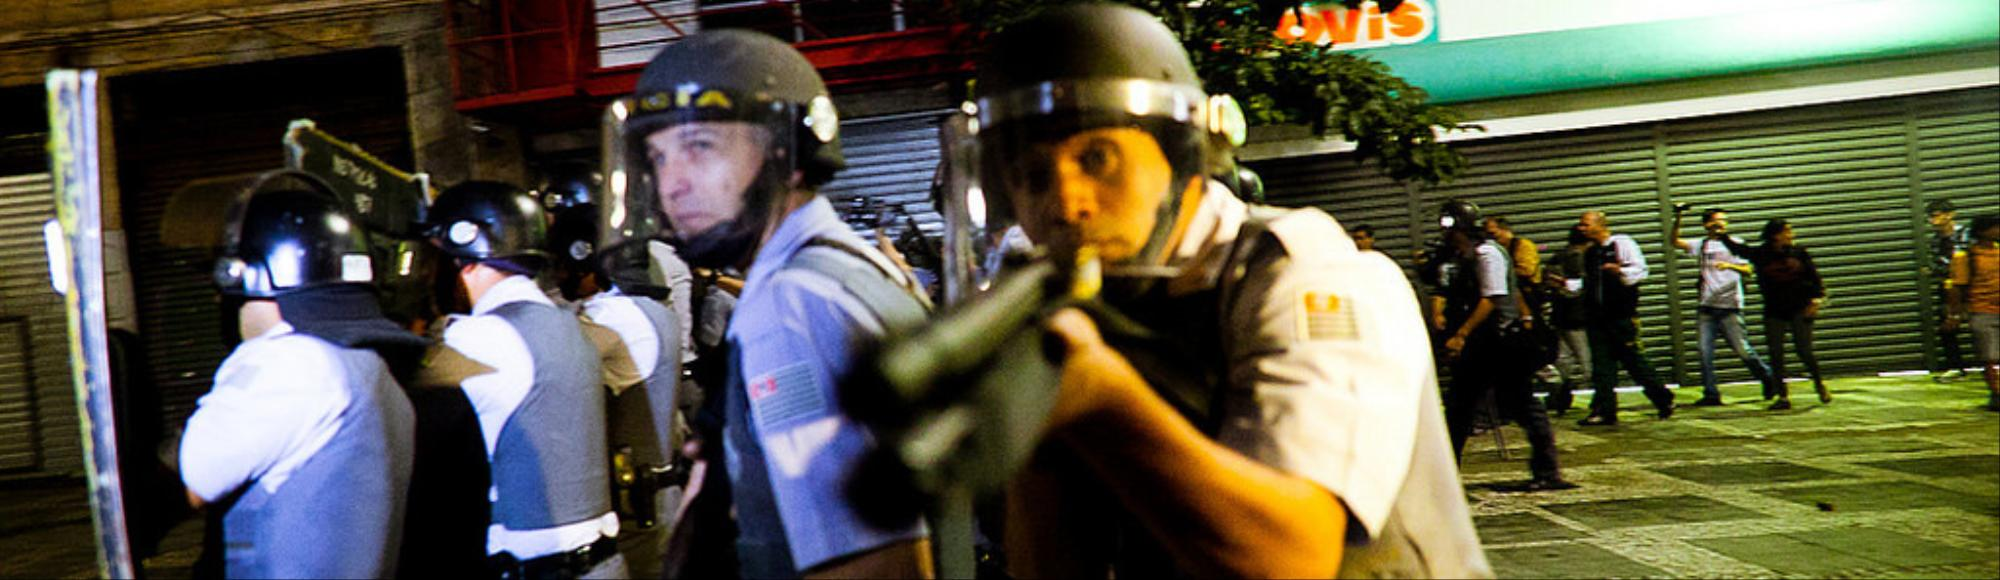 Someone Dies Violently Every 10 Minutes in Brazil — and Police Are Part of the Problem